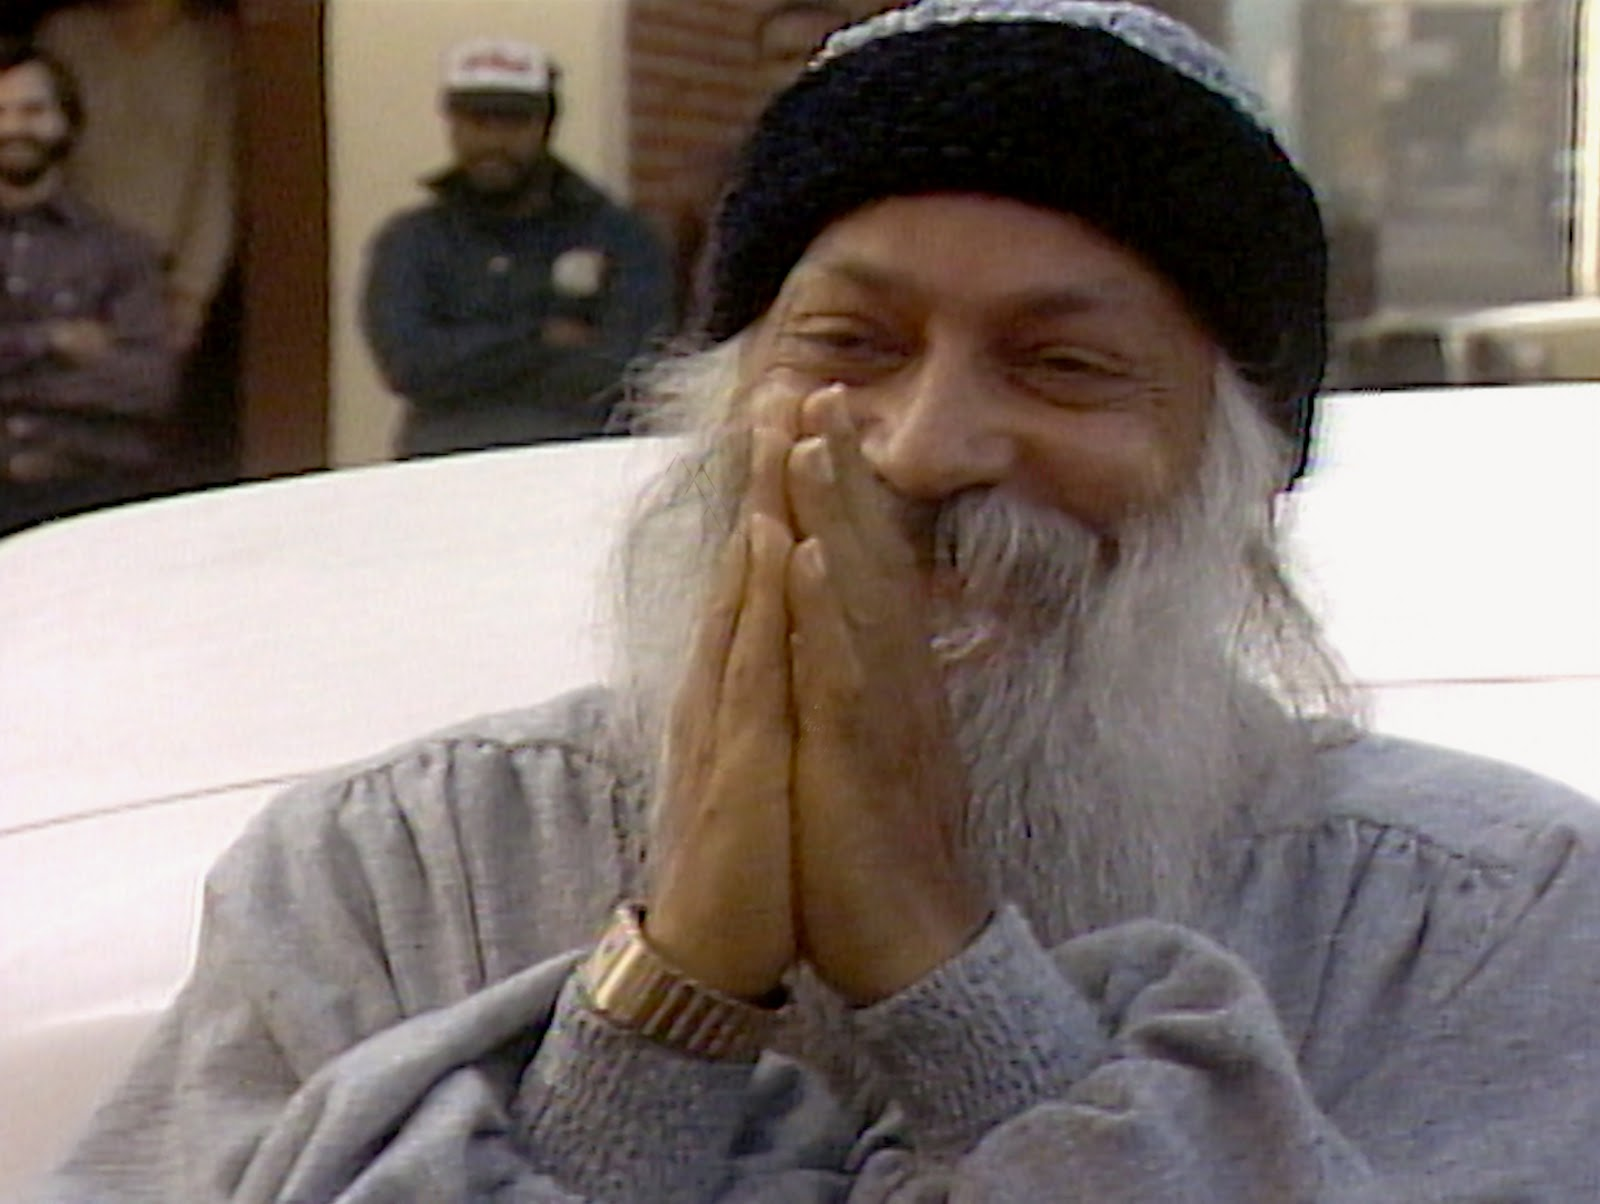 Wild Wild Country' Doesn't Include This Horrific Rajneesh Murder ...